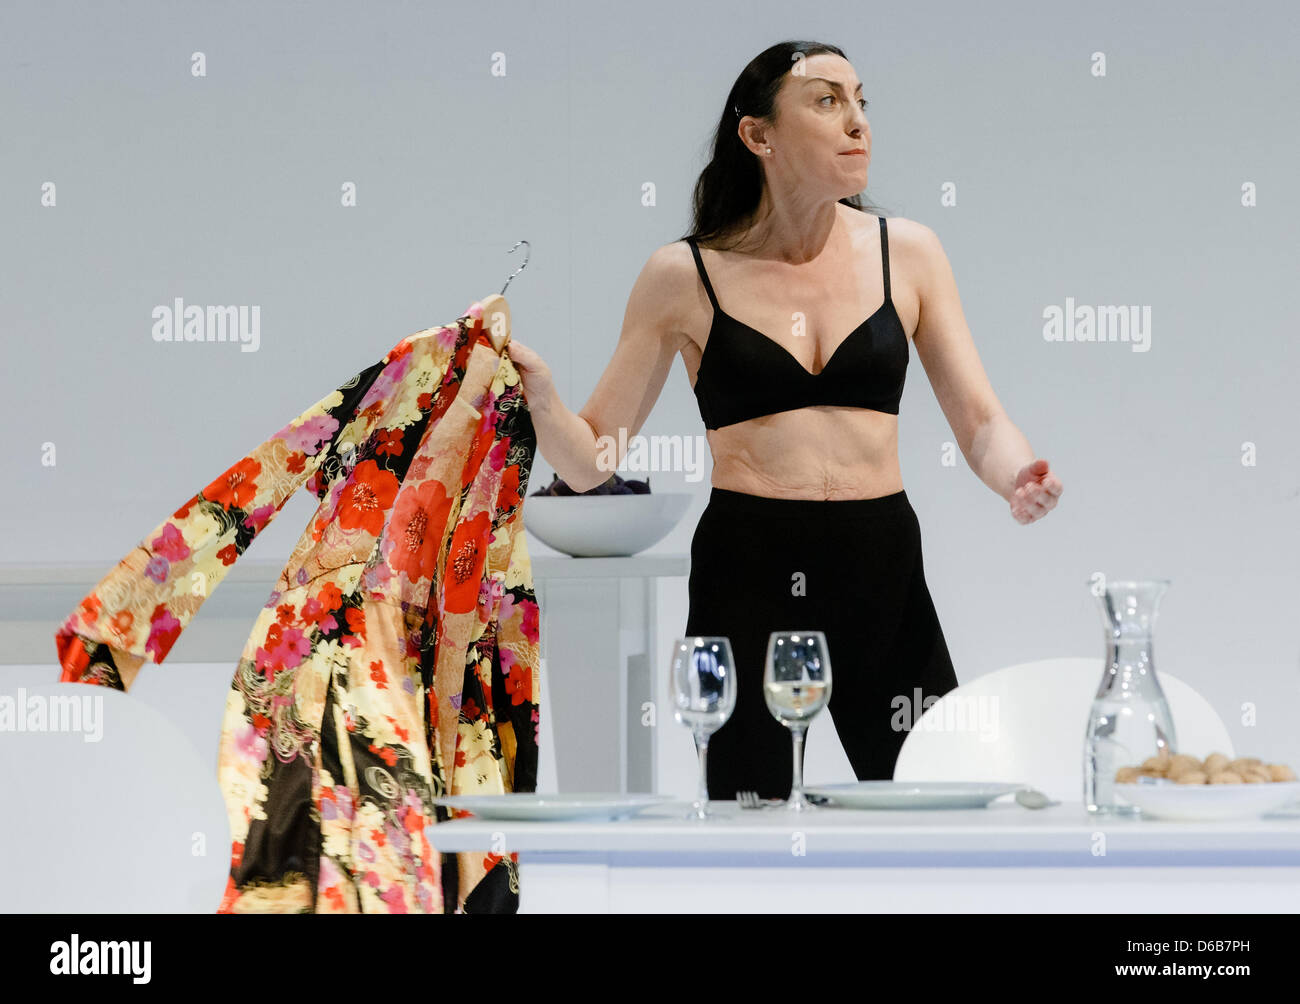 Actress Isabella Vertes-Schuetter, director of the Ernst Deutsch Theater, plays the role of 'Beth' during - Stock Image